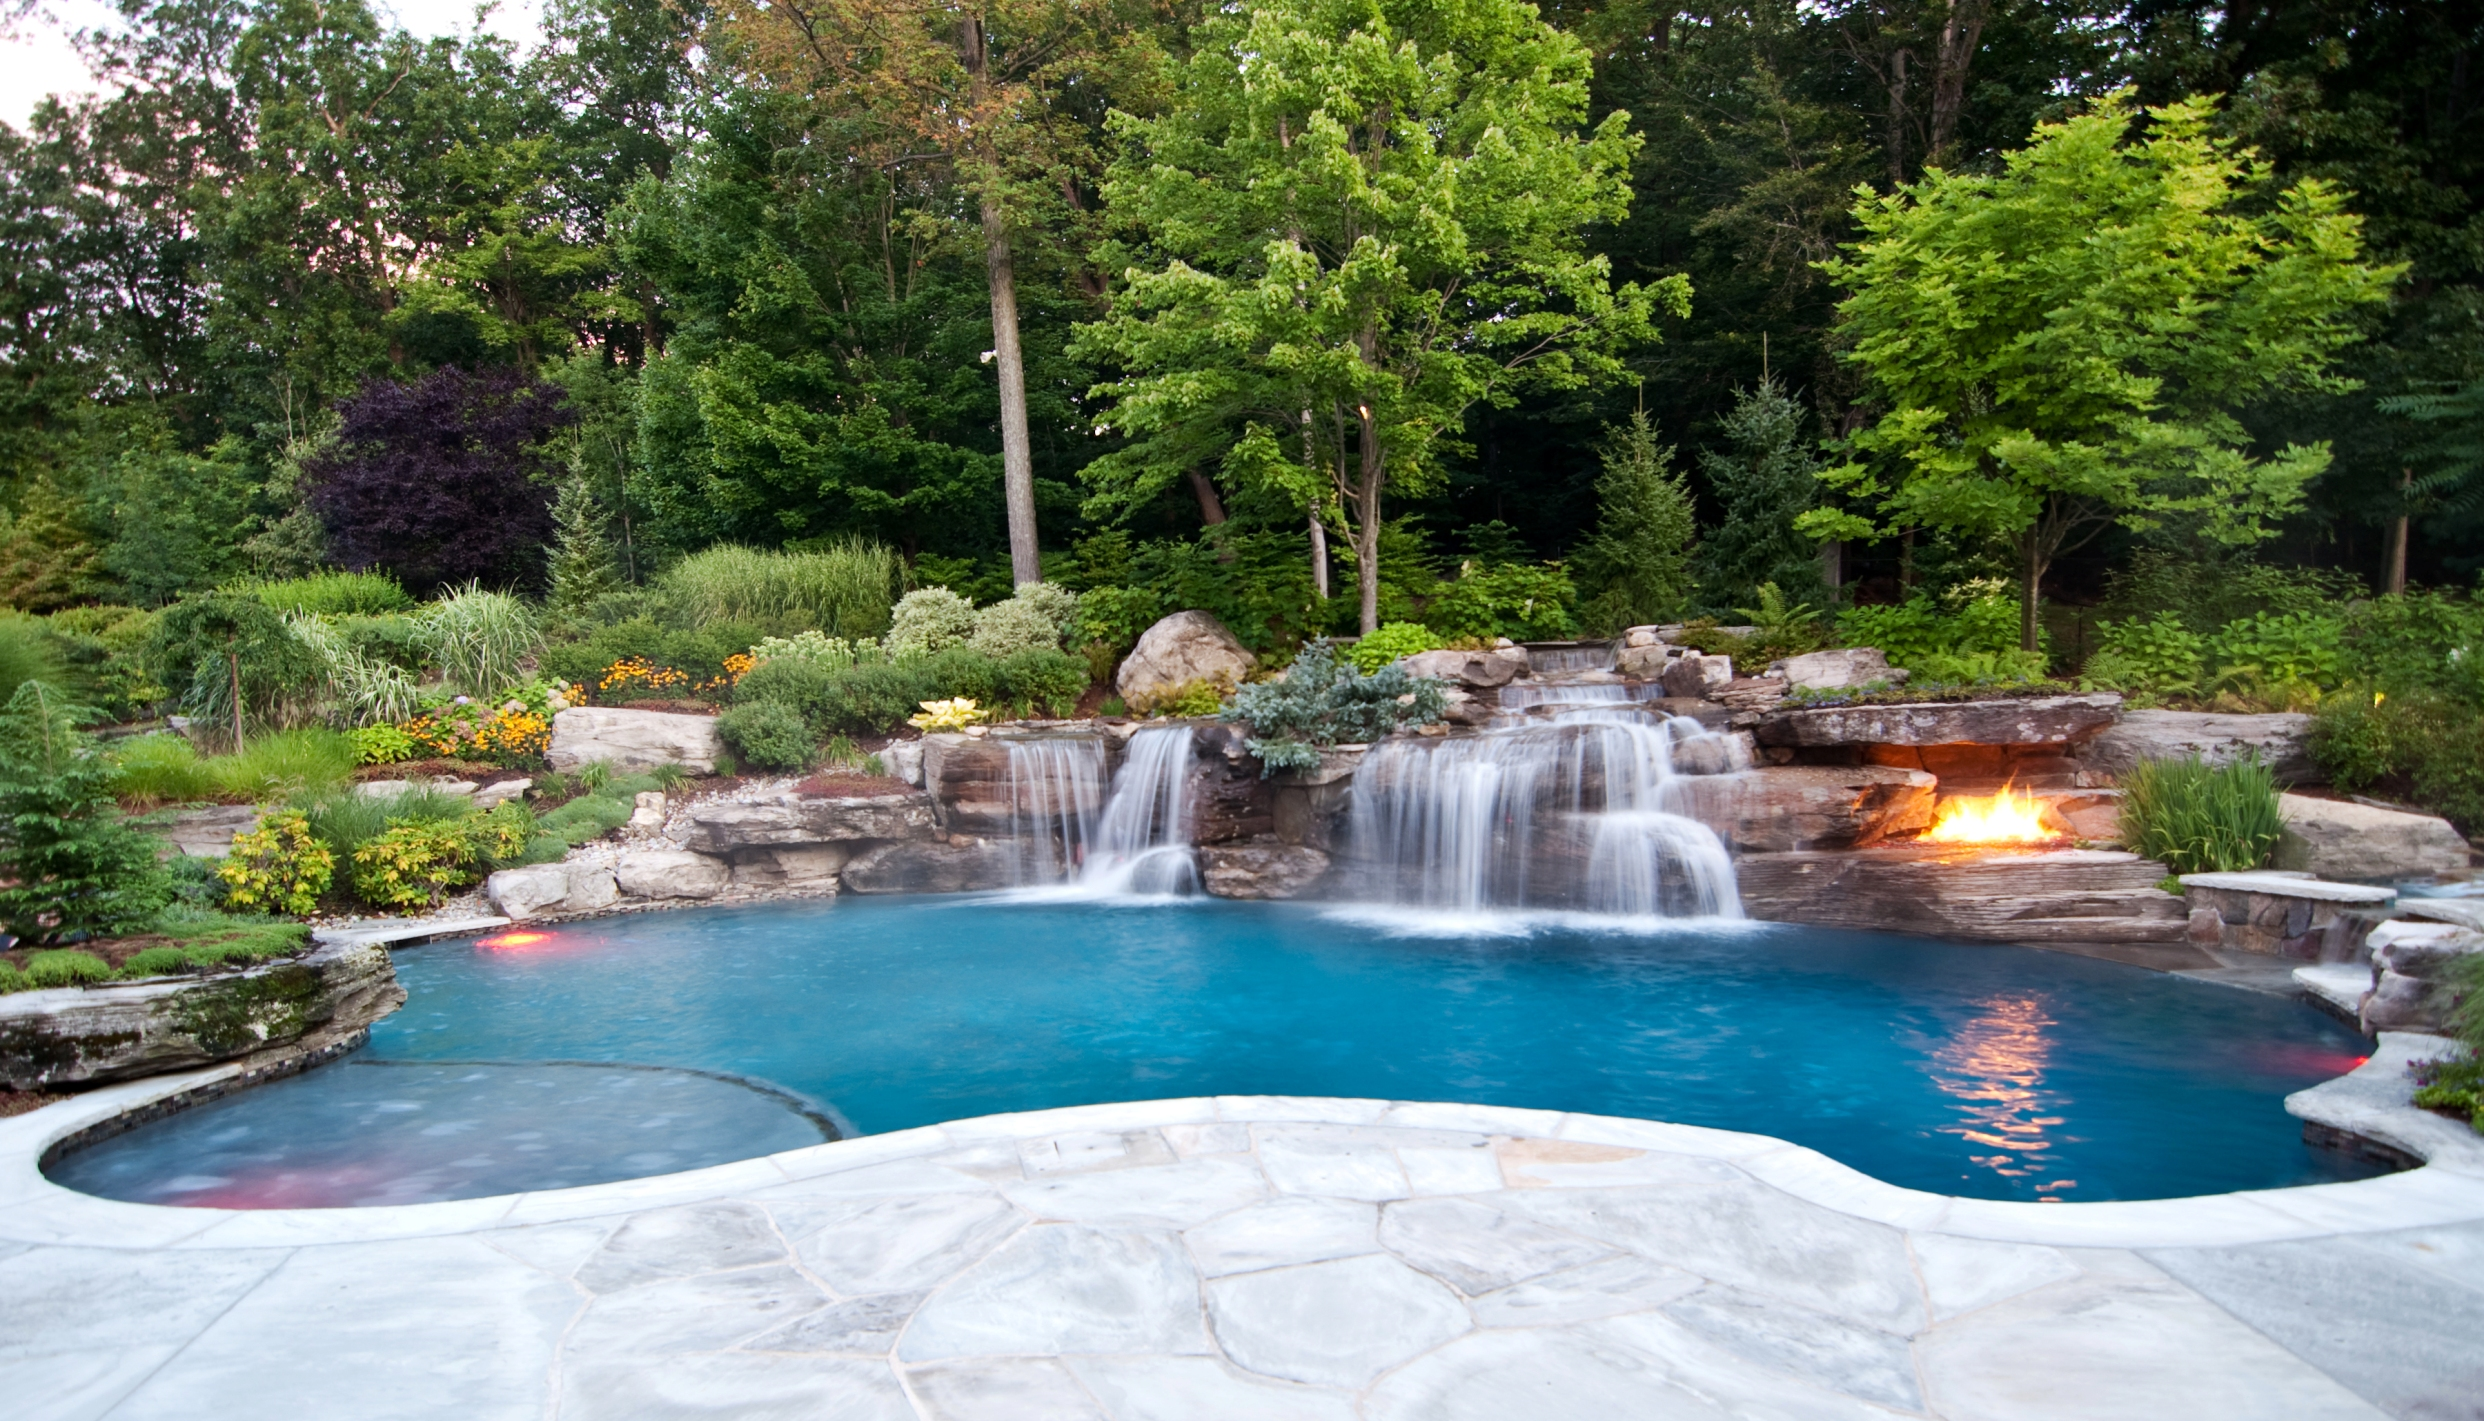 New pool construction northern virginia maryland and - Swimming pools for small backyards ...